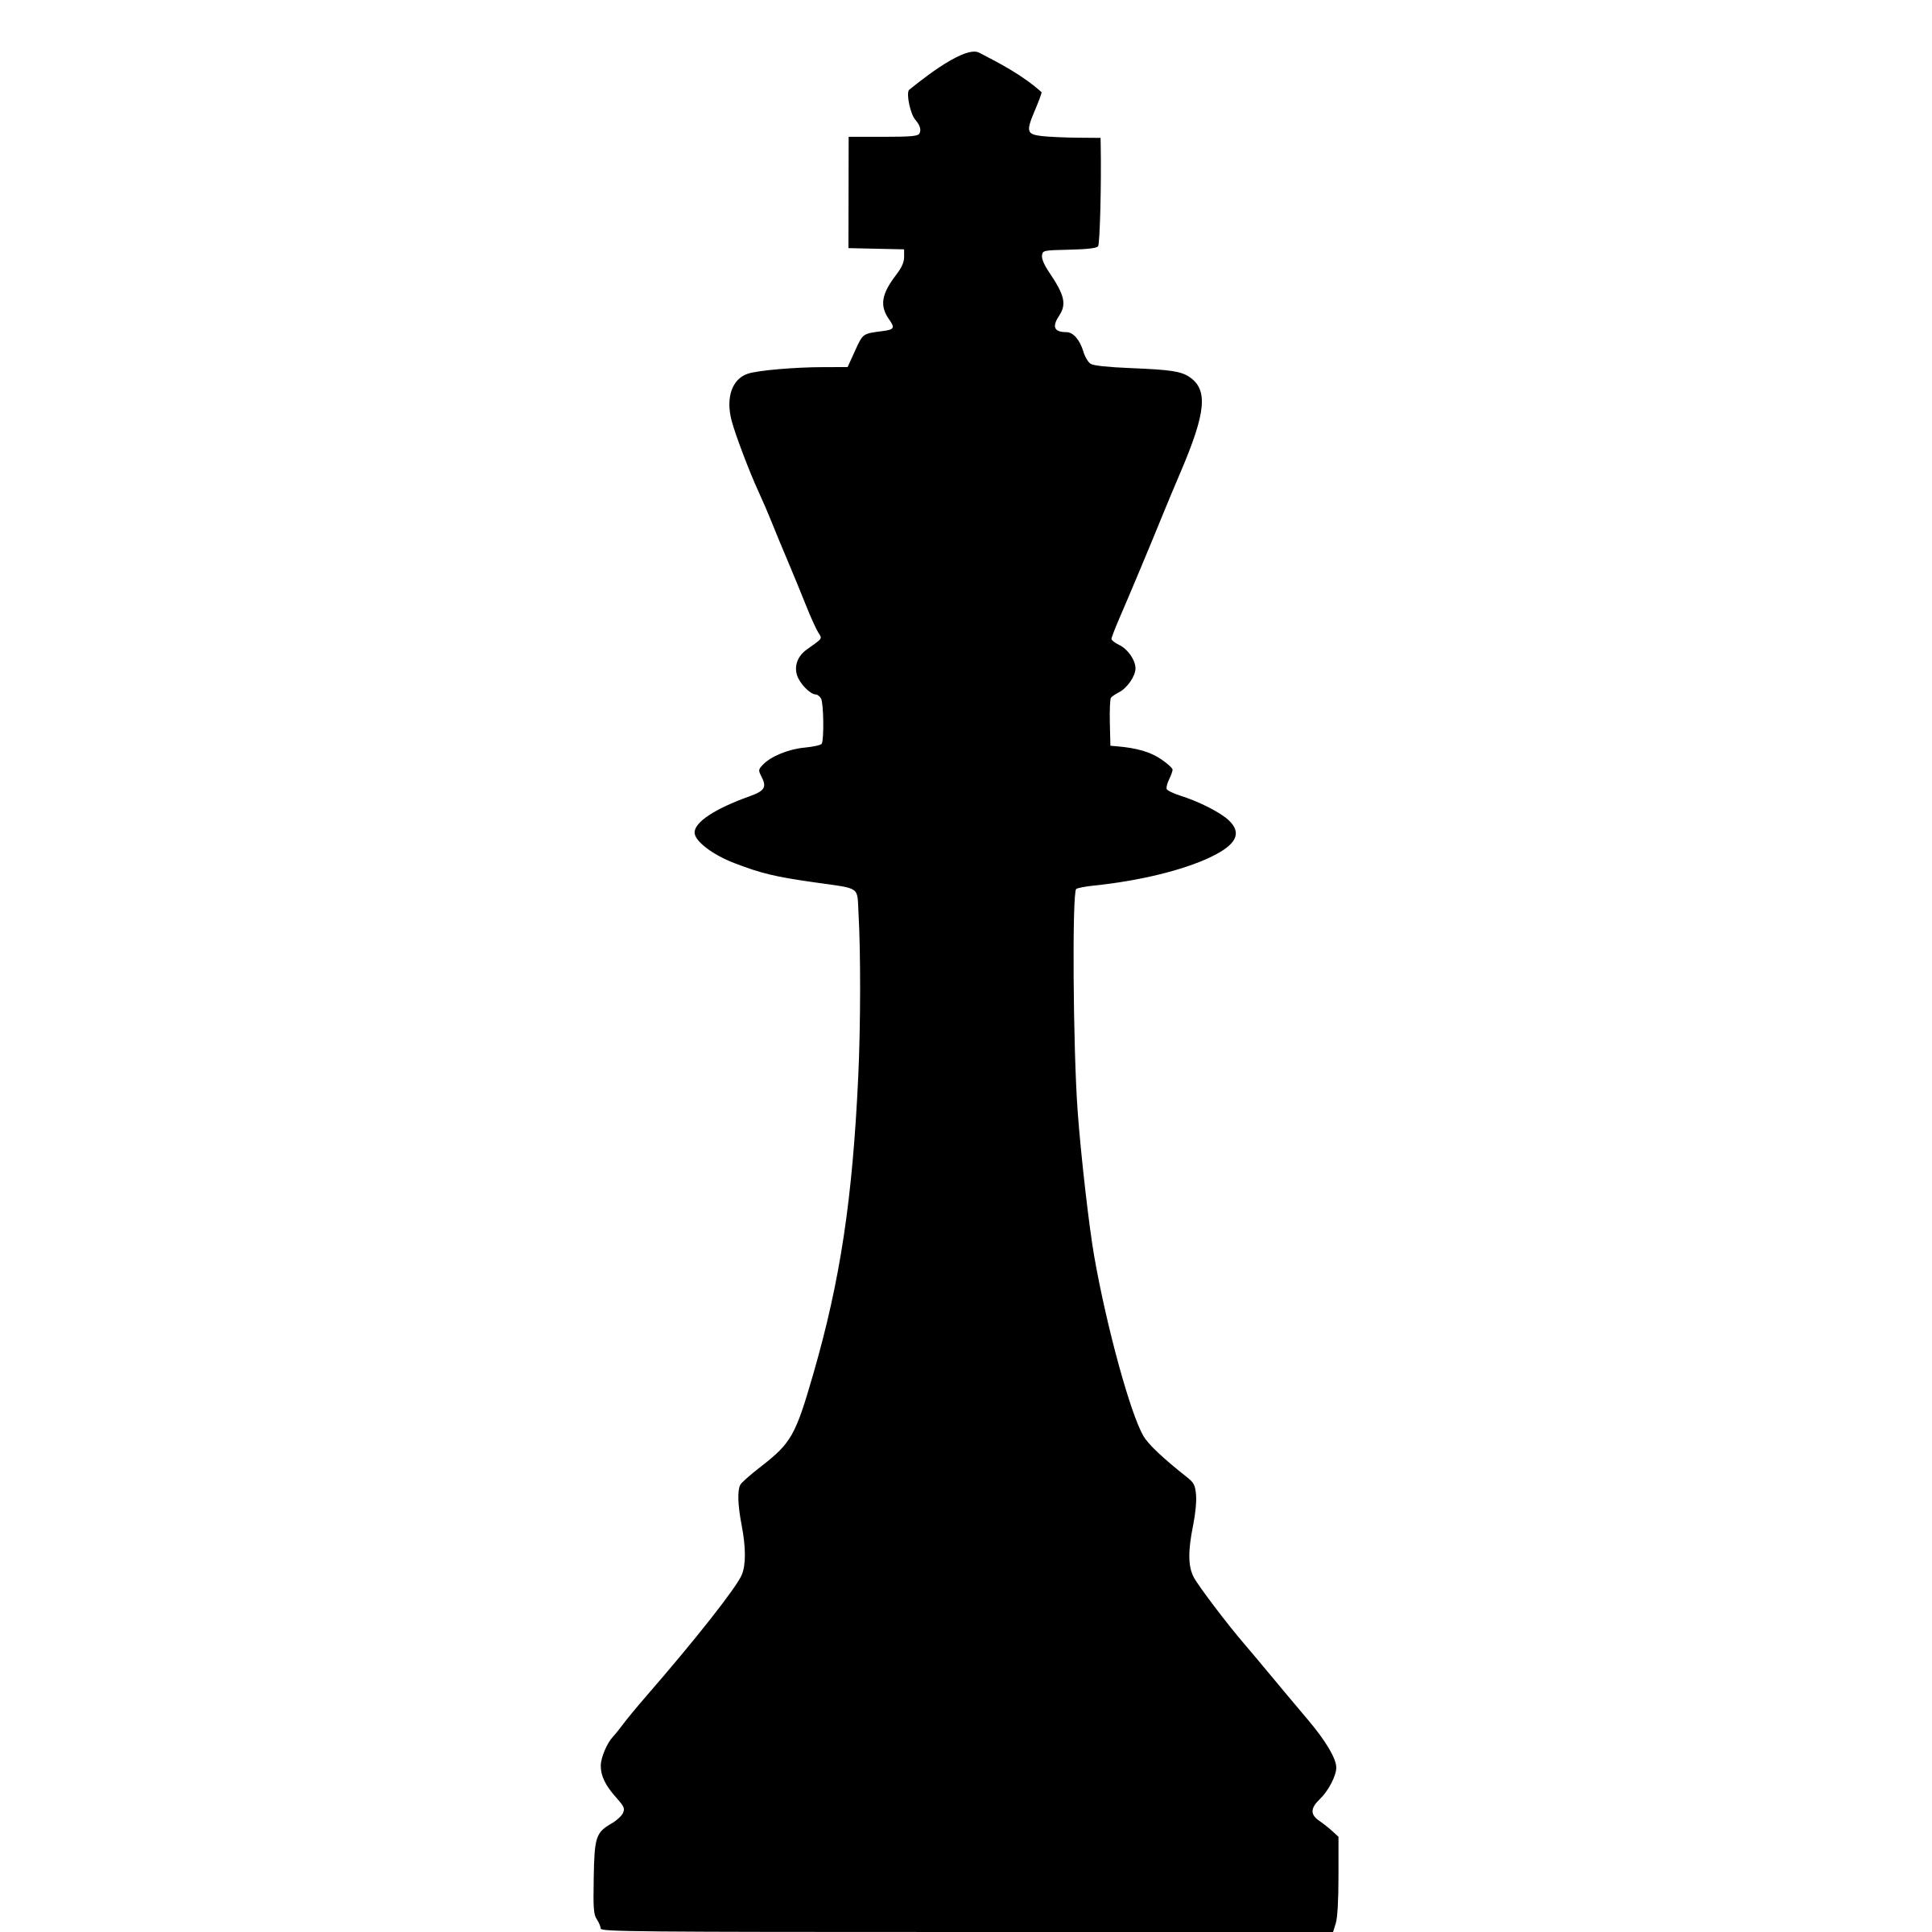 2400x2400 Silhouette Chess Piece King Rey Icons Png